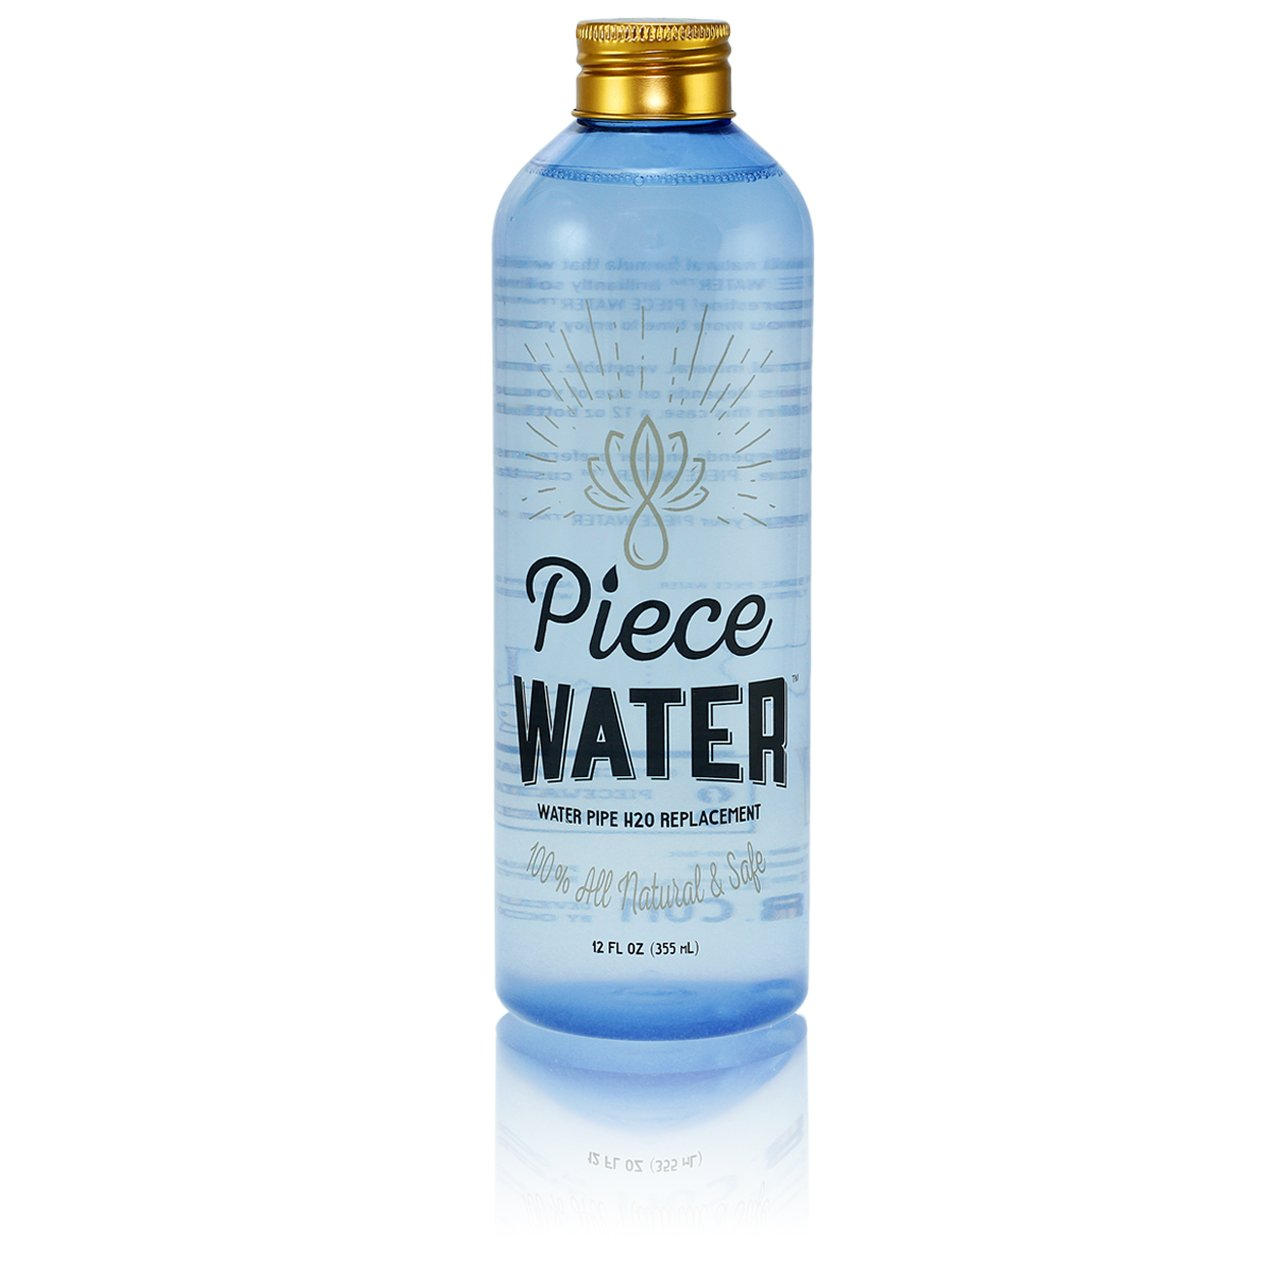 Piece Water Solution (12oz) by Piece Water